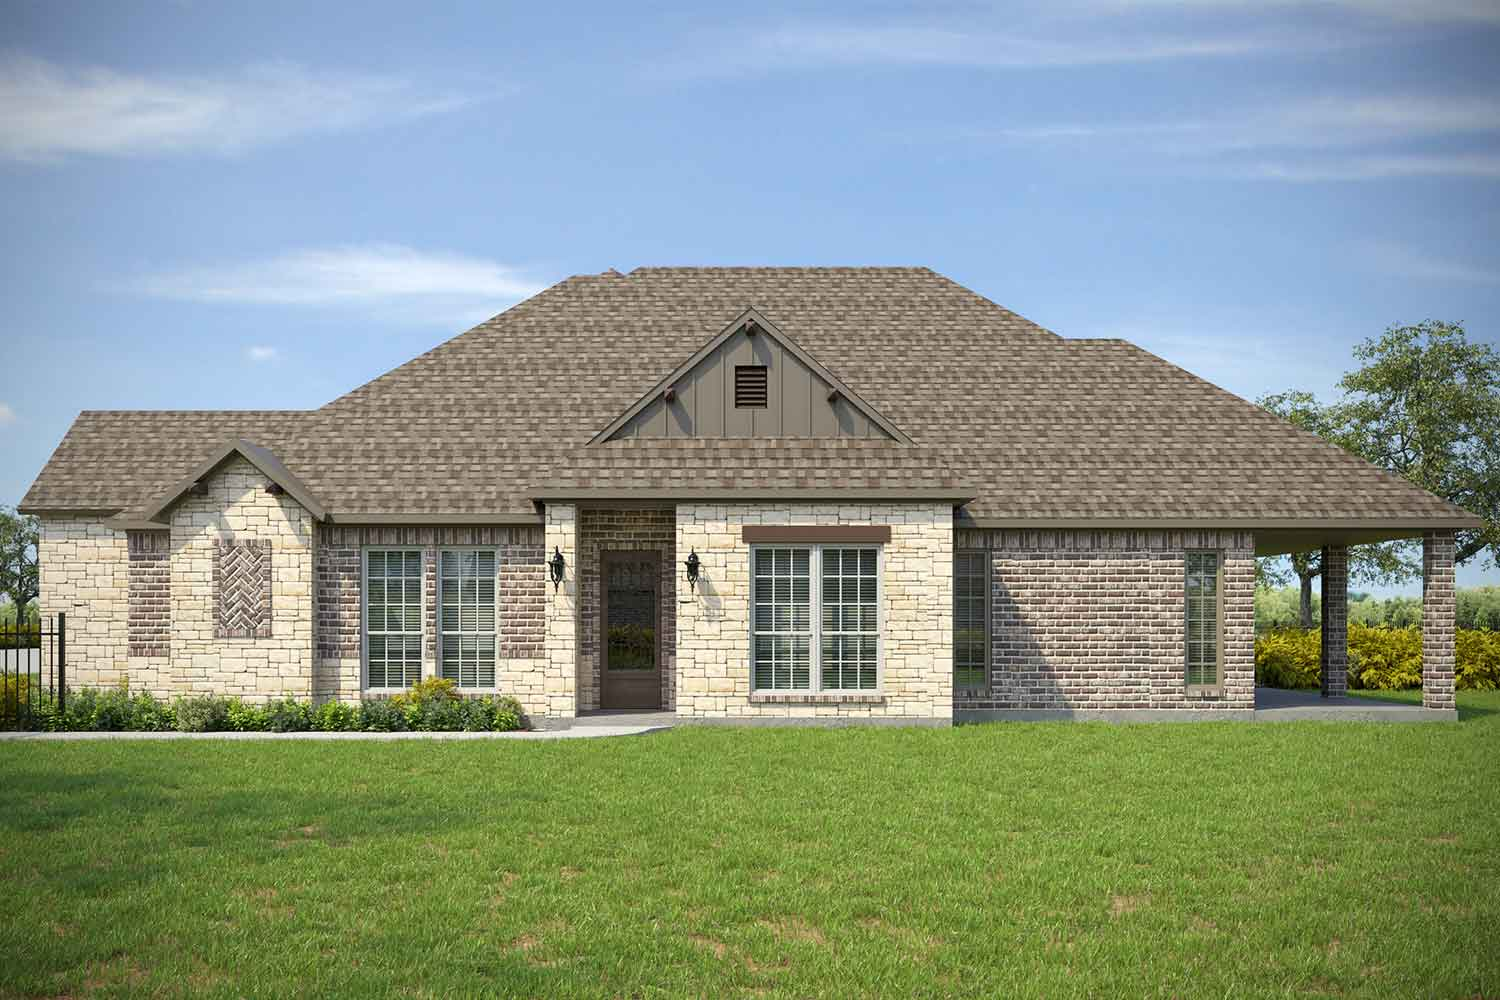 New Homes for Sale in Georgetown TX | 112 San View Dr